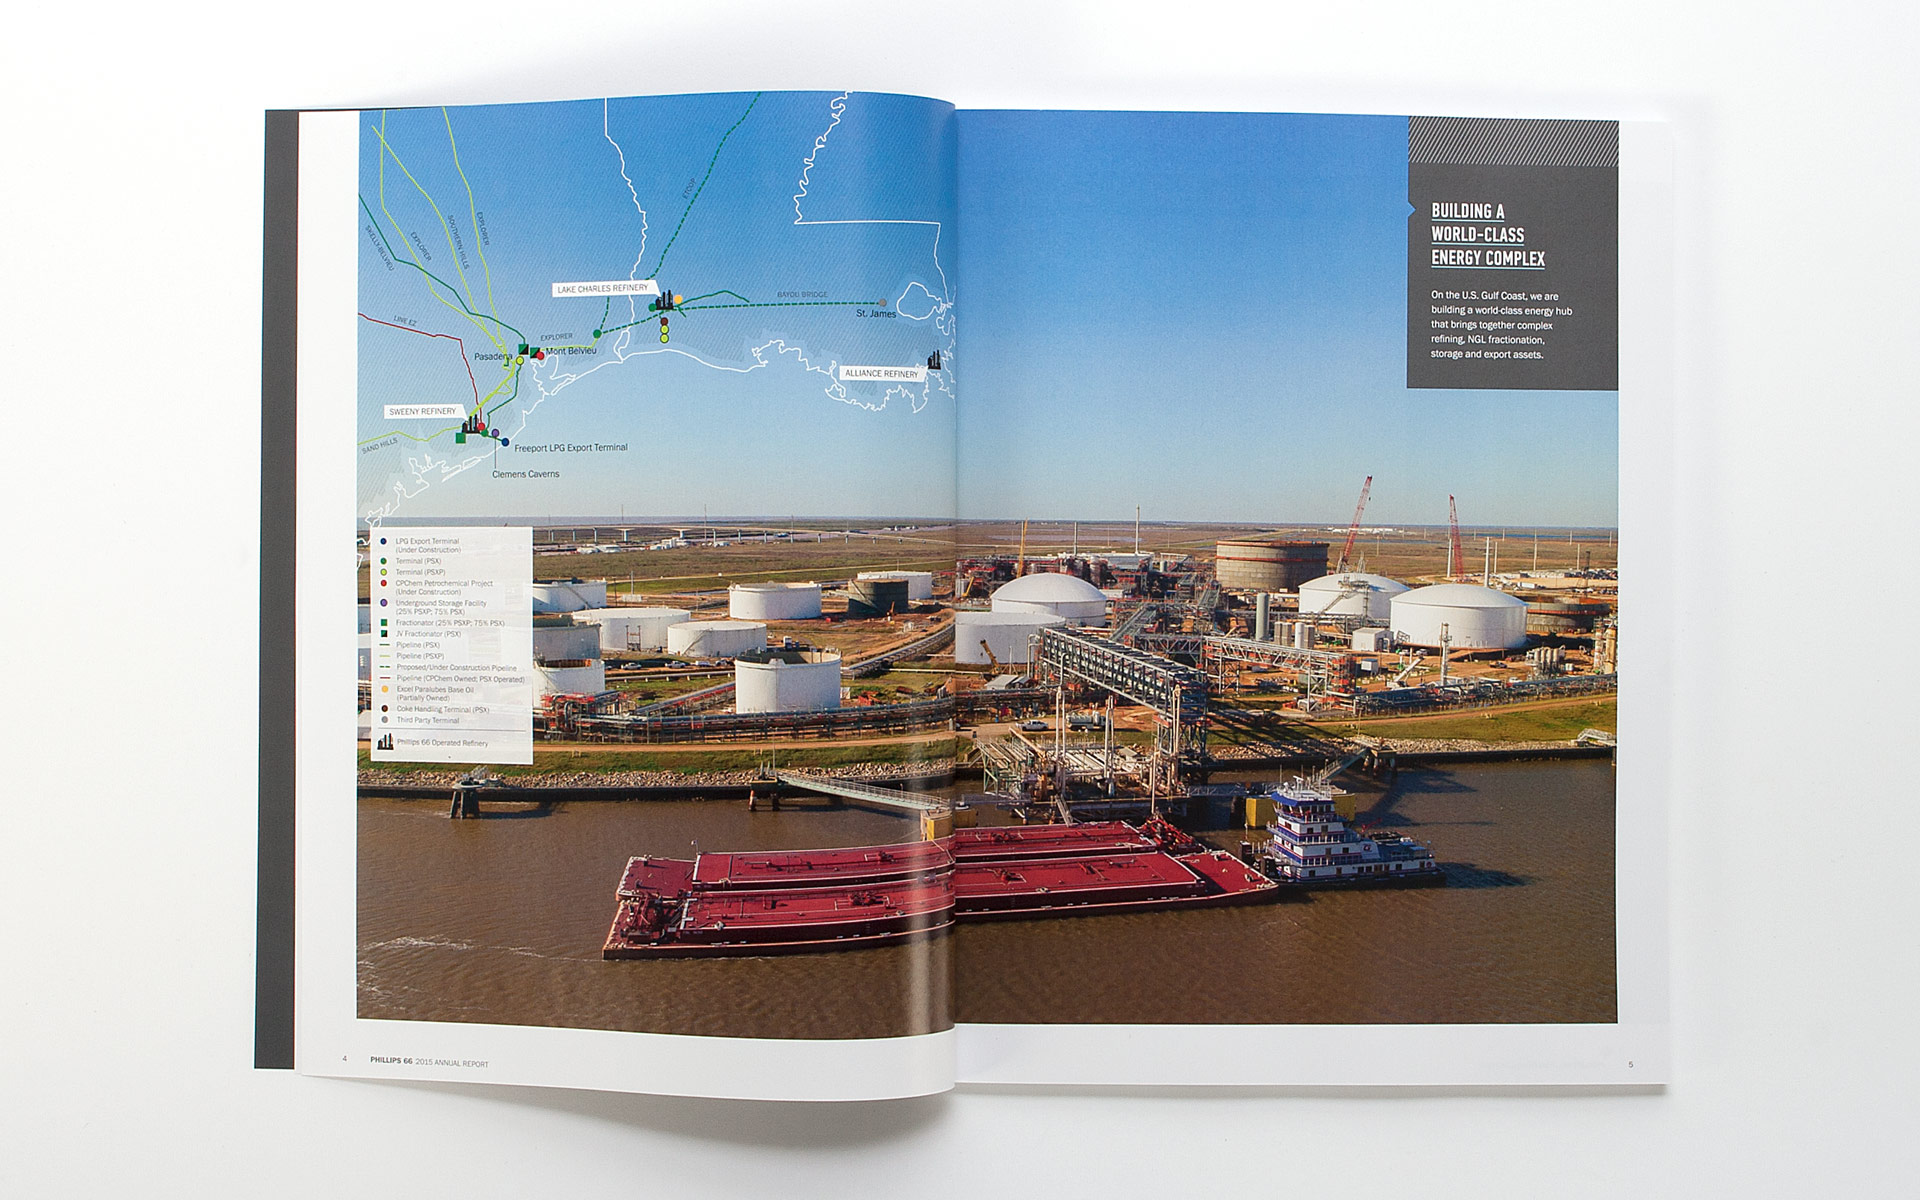 Phillips 66 2015 Annual Report spread 3